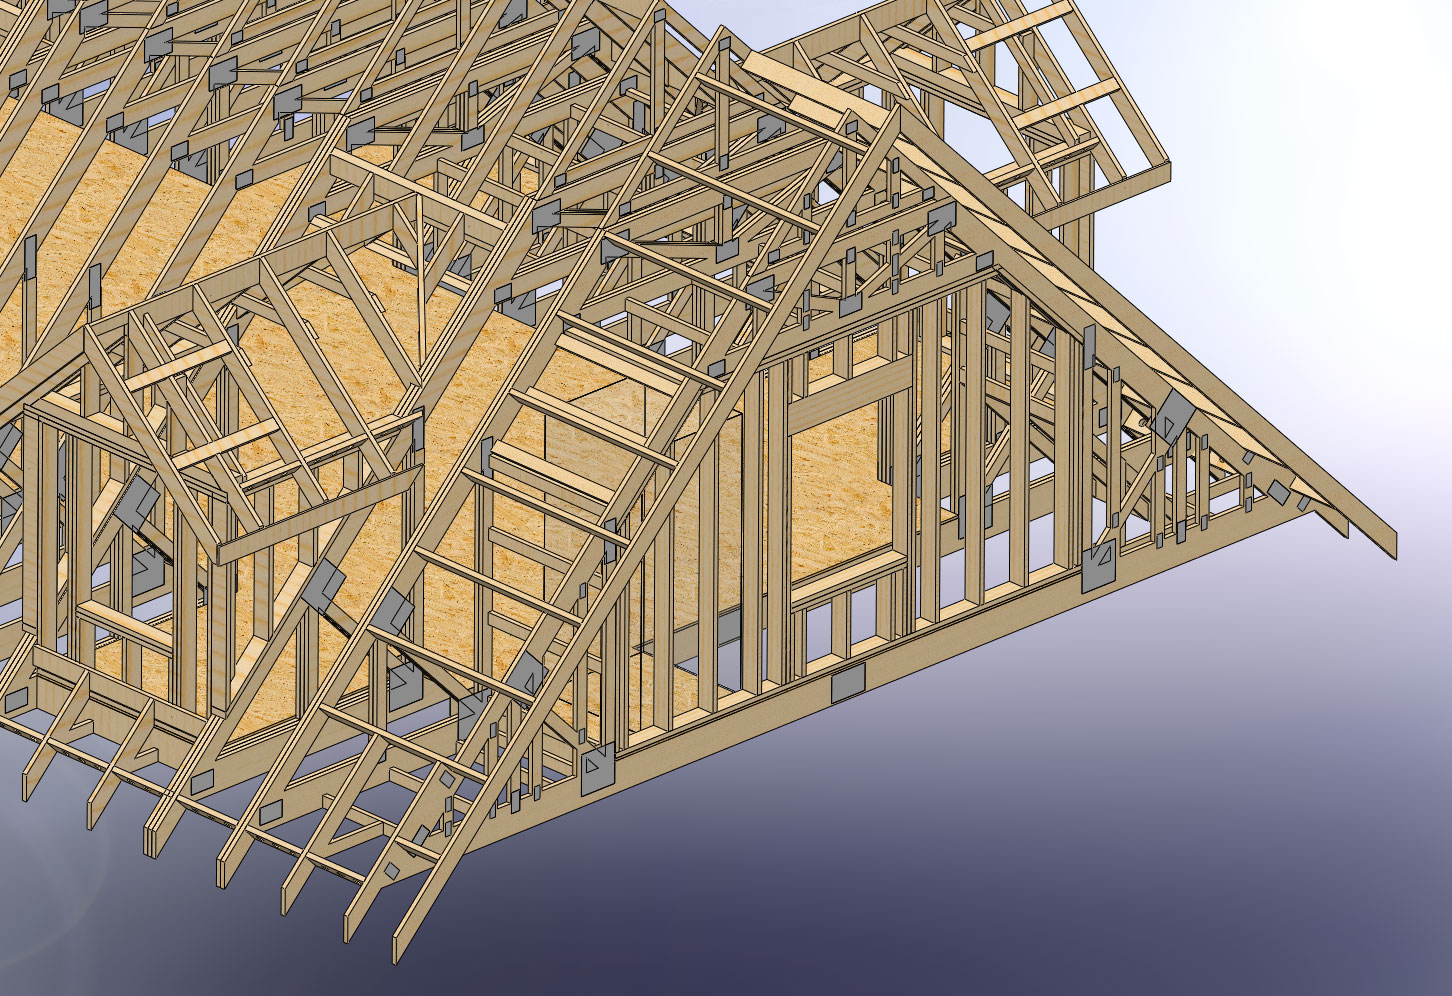 How do you frame stairs with attic trusses?